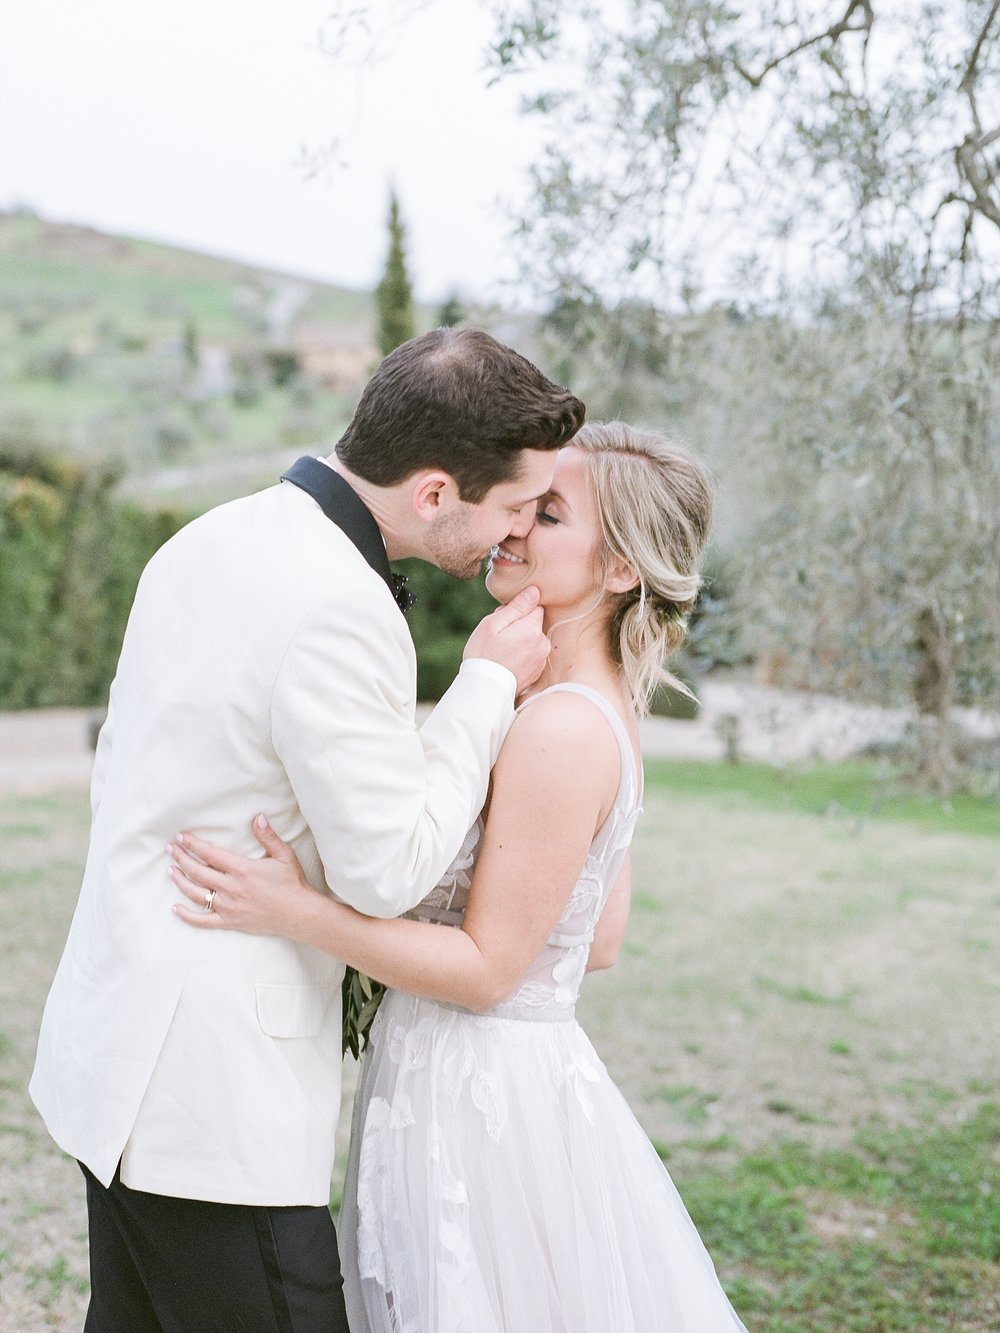 All White Destination Wedding in the Hills of Tuscany Italy at Estate Borgo Petrognano by Kelsi Kliethermes Photography_0061.jpg